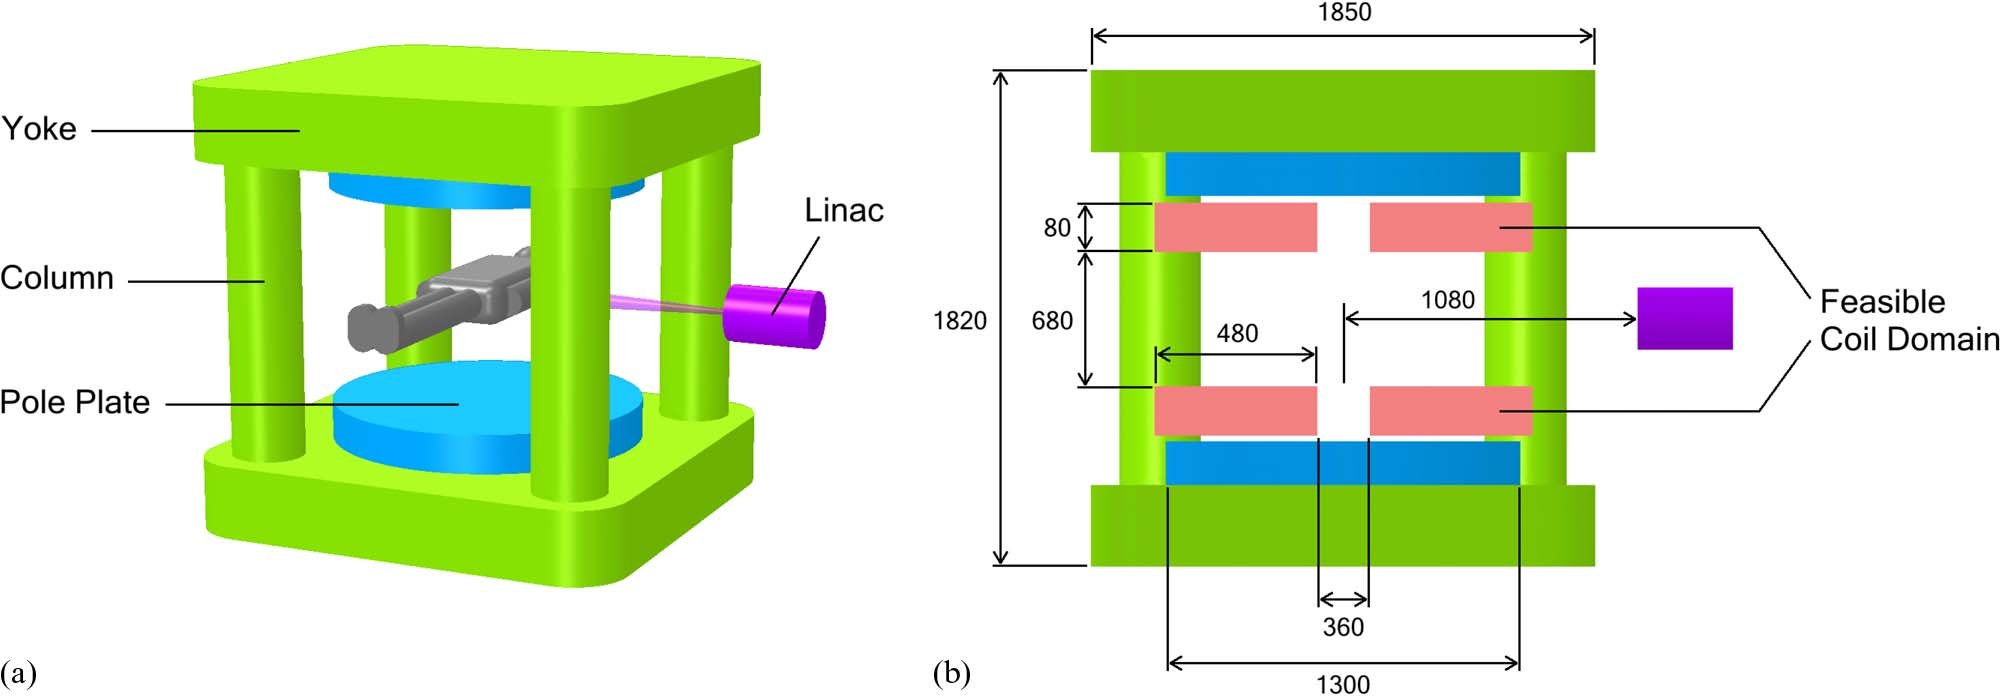 Design and Optimization of Superconducting MRI Magnet Systems With Magnetic Materials